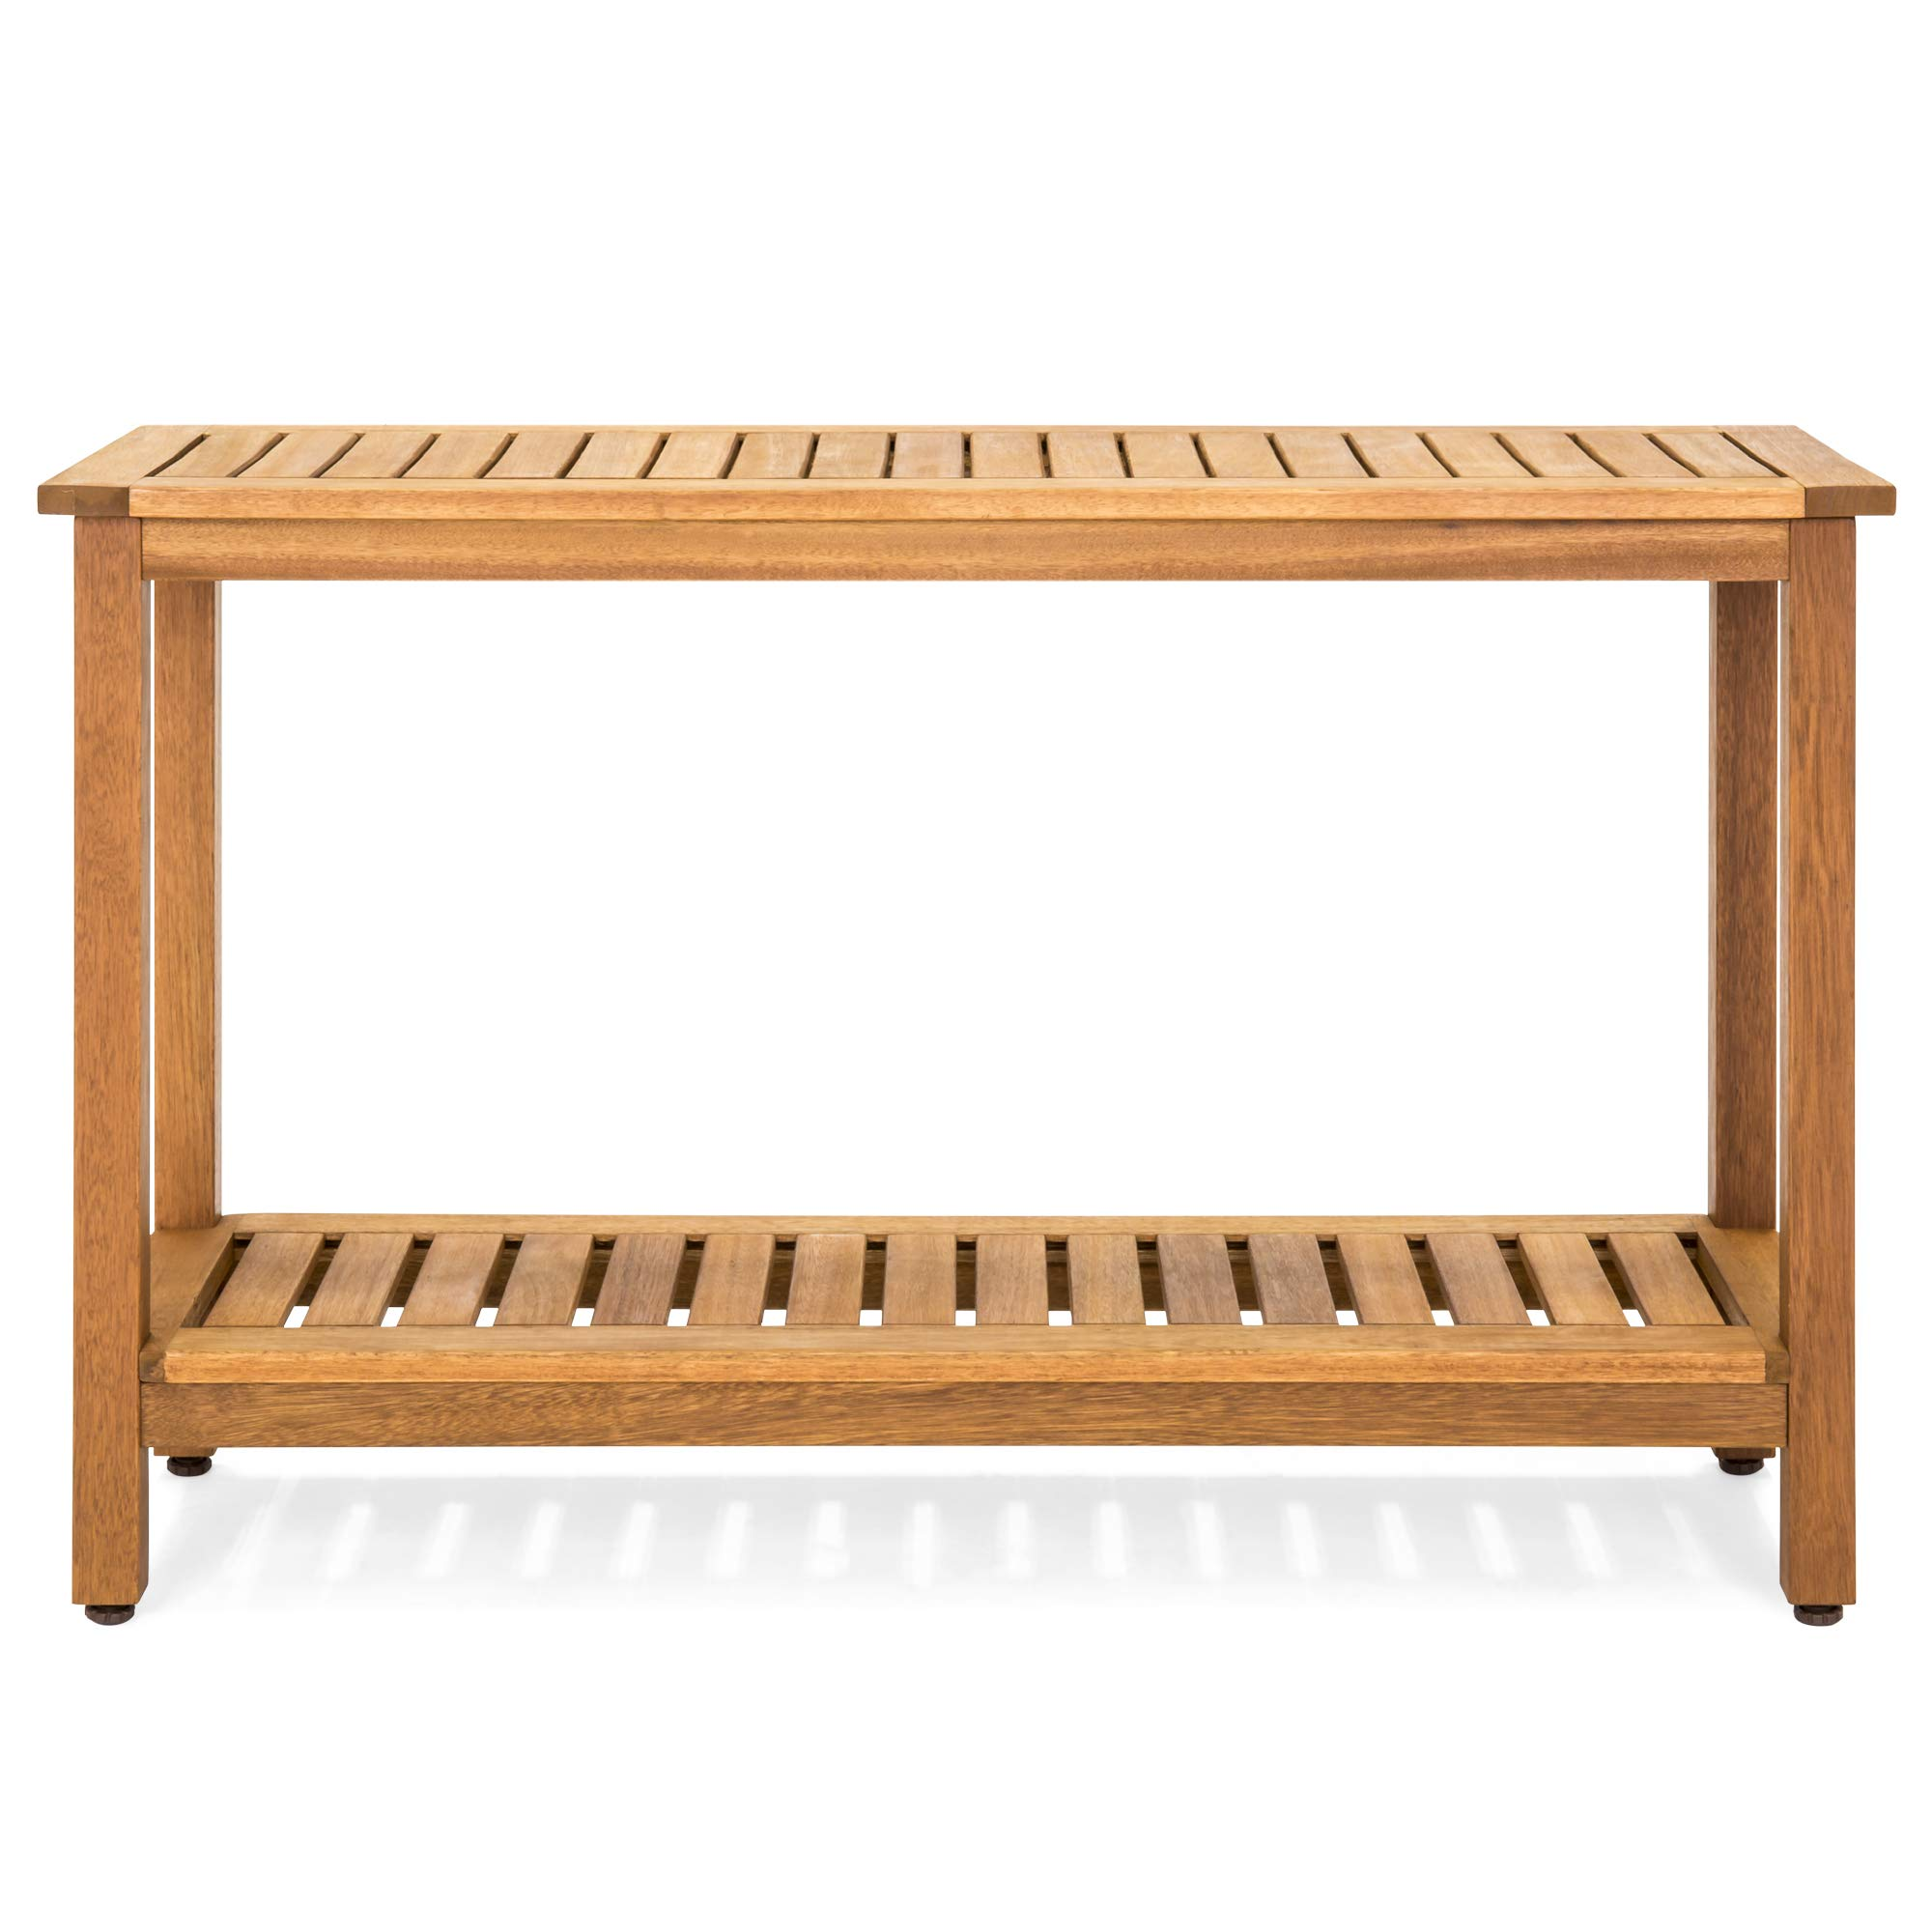 Best Choice Products 48in 2-Shelf Indoor Outdoor Multifunctional Eucalyptus Wood Buffet Bar Storage Console Table Organizer - Natural